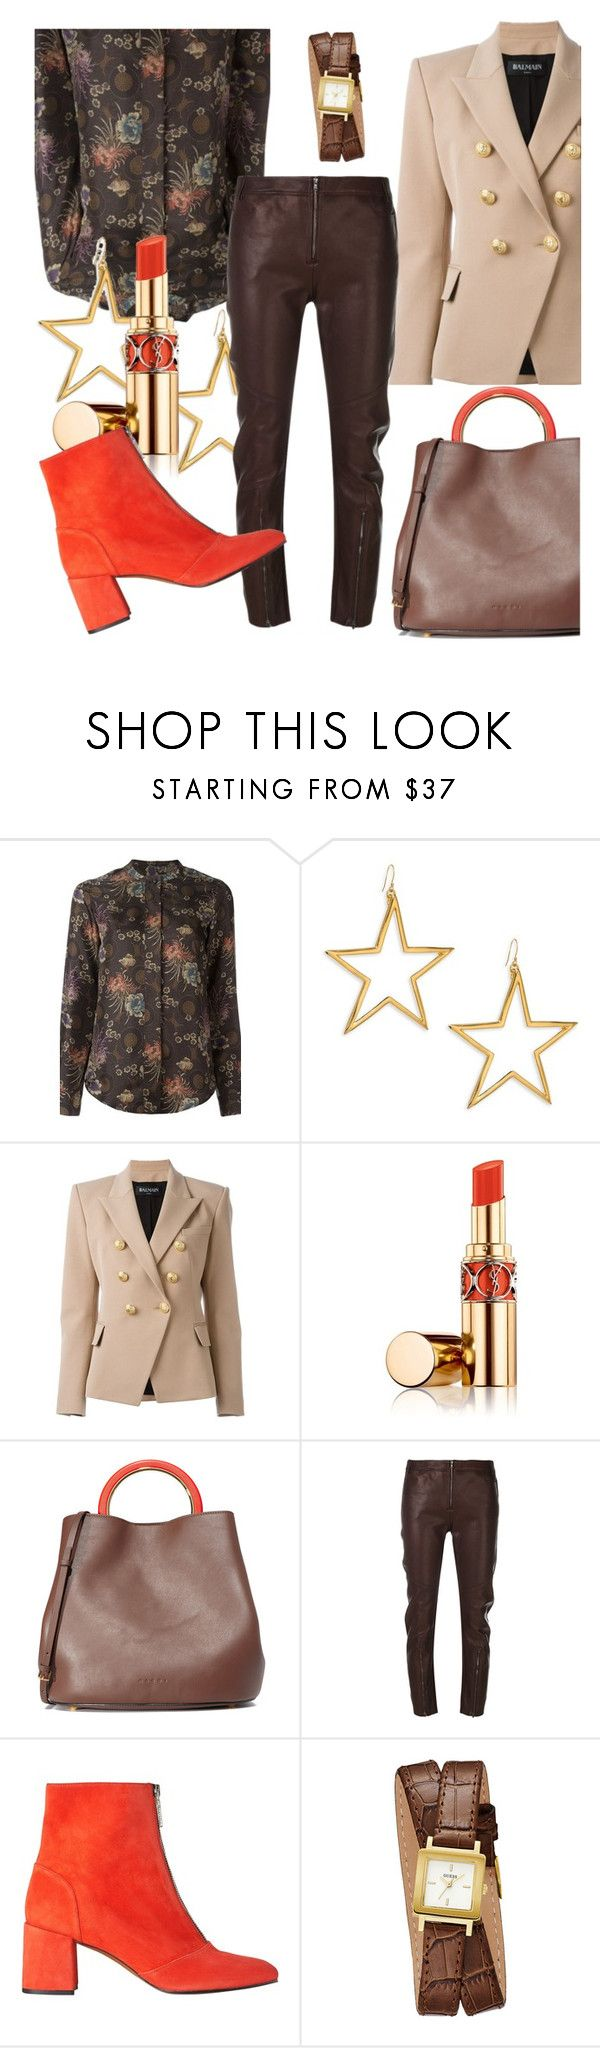 """""""Fall look"""" by angy-beurskens ❤ liked on Polyvore featuring Alberto Biani, Kenneth Jay Lane, Balmain, Yves Saint Laurent, Marni, Ilaria Nistri, Whistles and GUESS"""